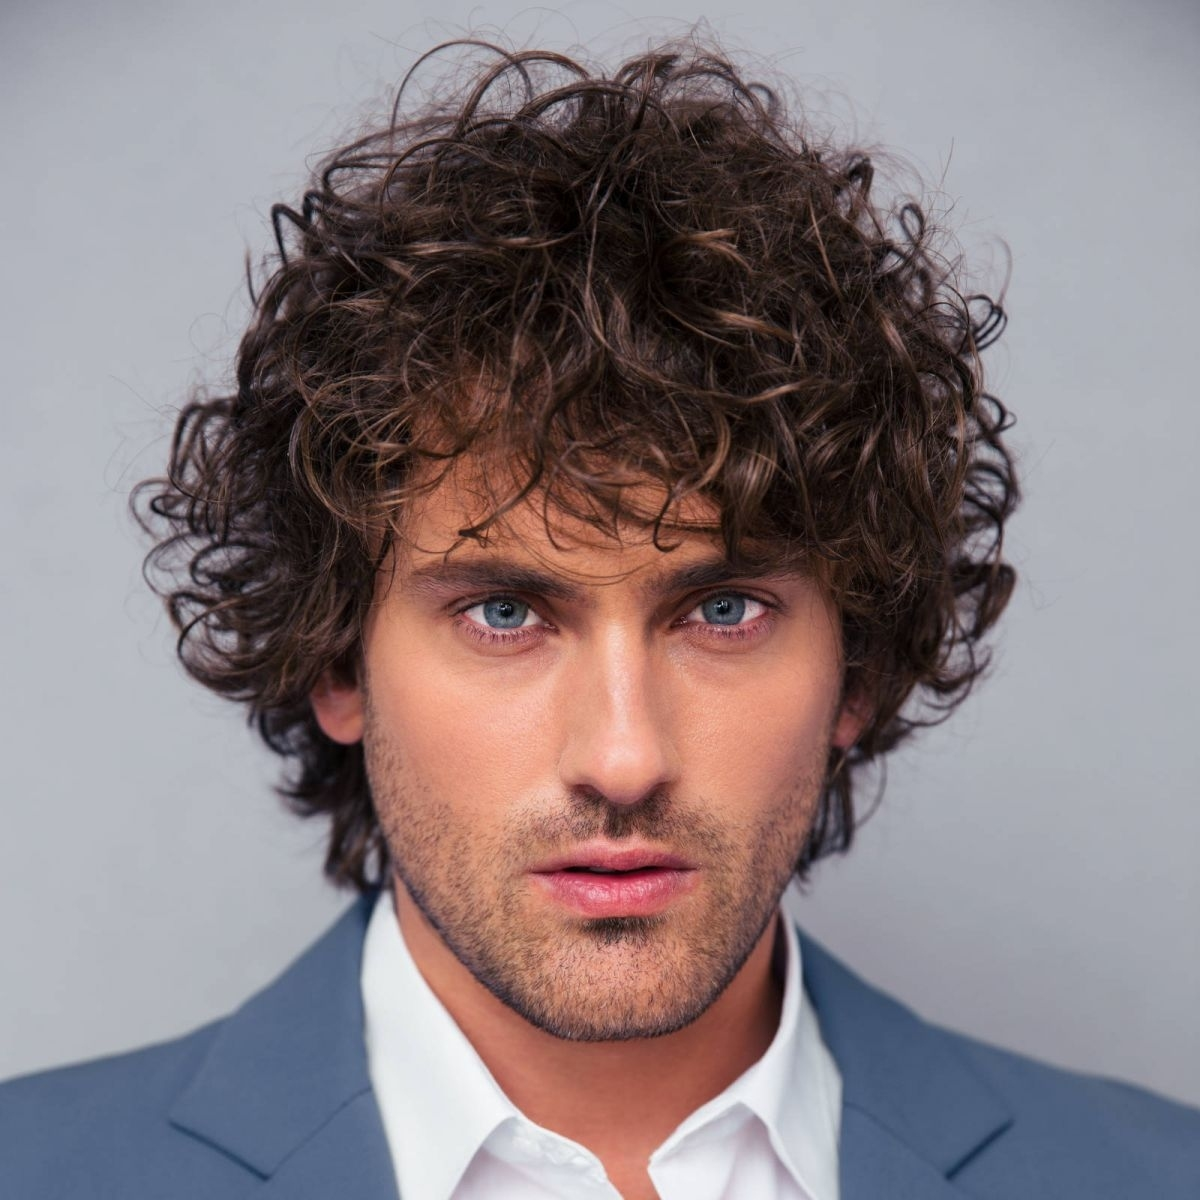 40 Modern Men's Hairstyles For Curly Hair (That Will Change Your Look) within Hairstyle For Curly Hair Guys